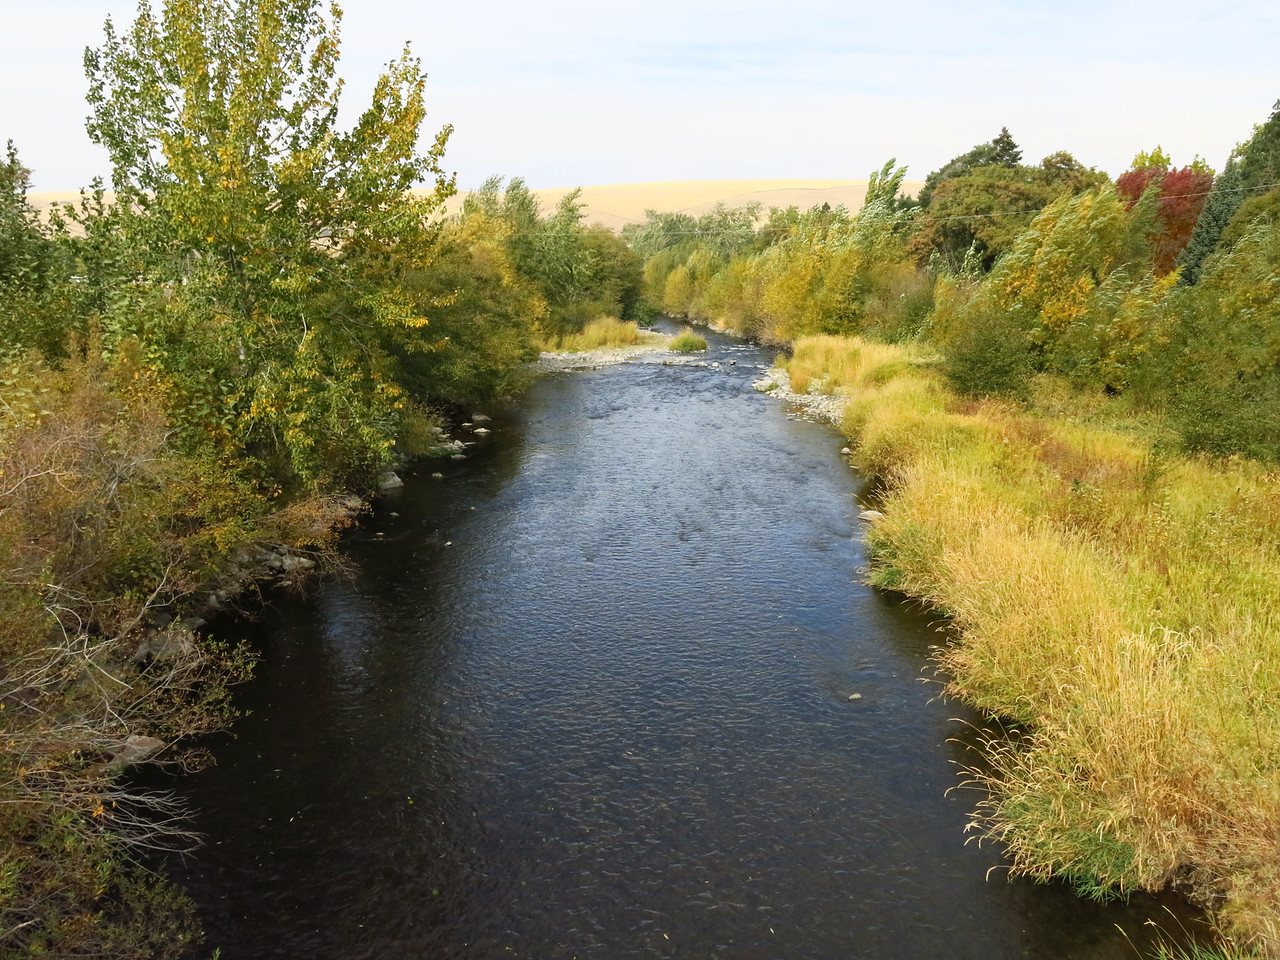 After the volkswalk, we walked along the Touchet River.   This is a downstream view from a foot bridge.